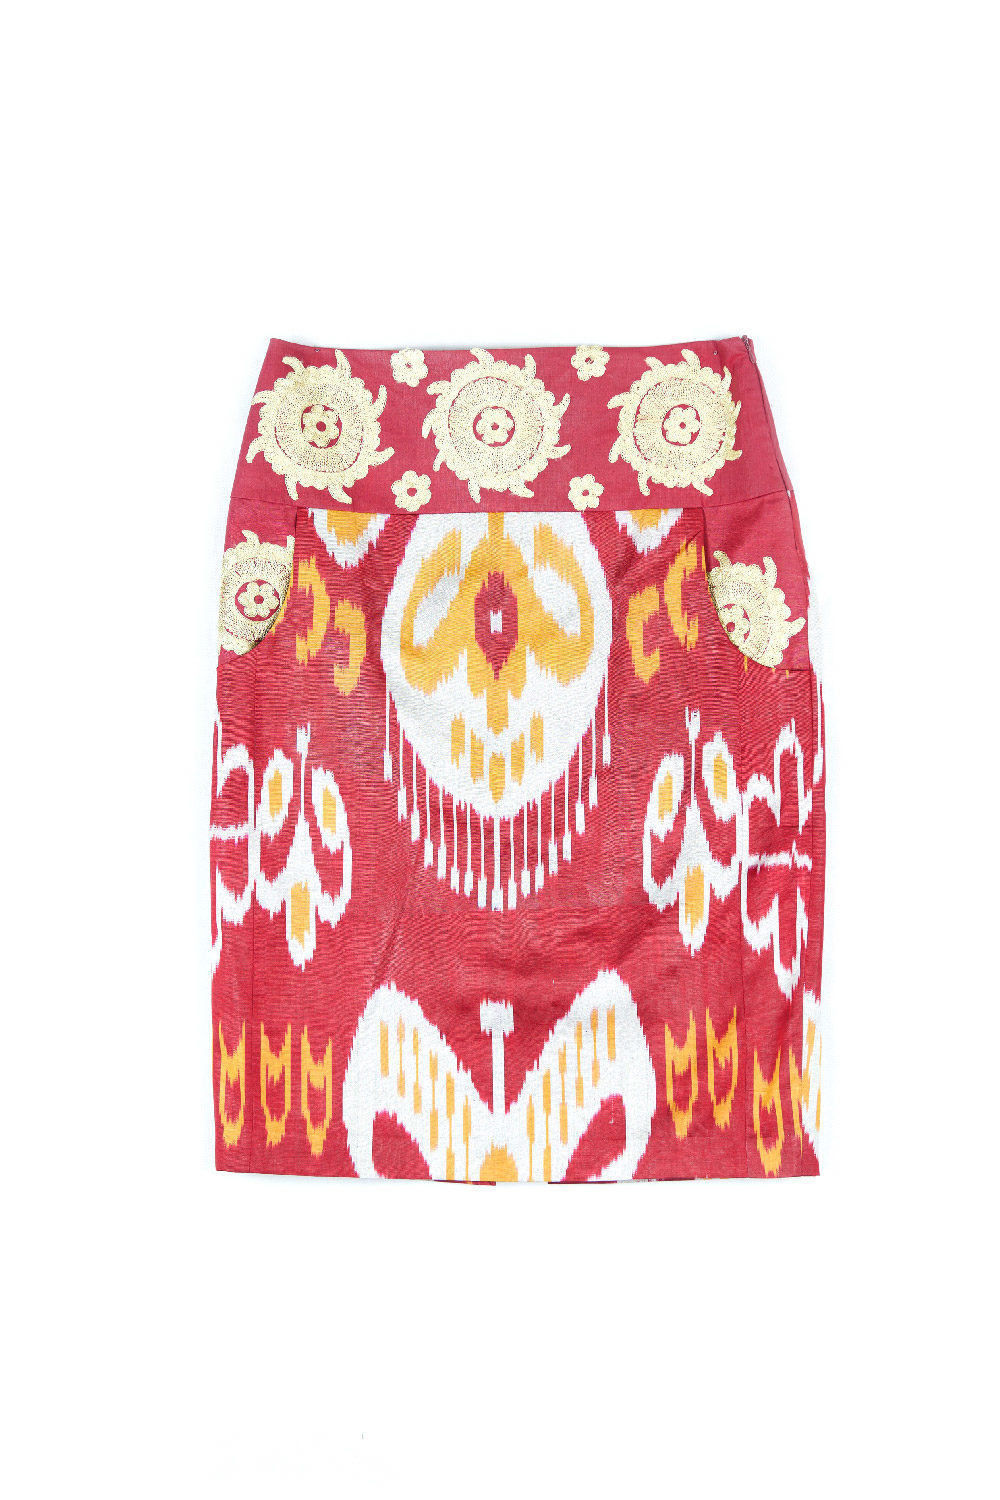 Ikat Embroidered Pencil Skirt IK345